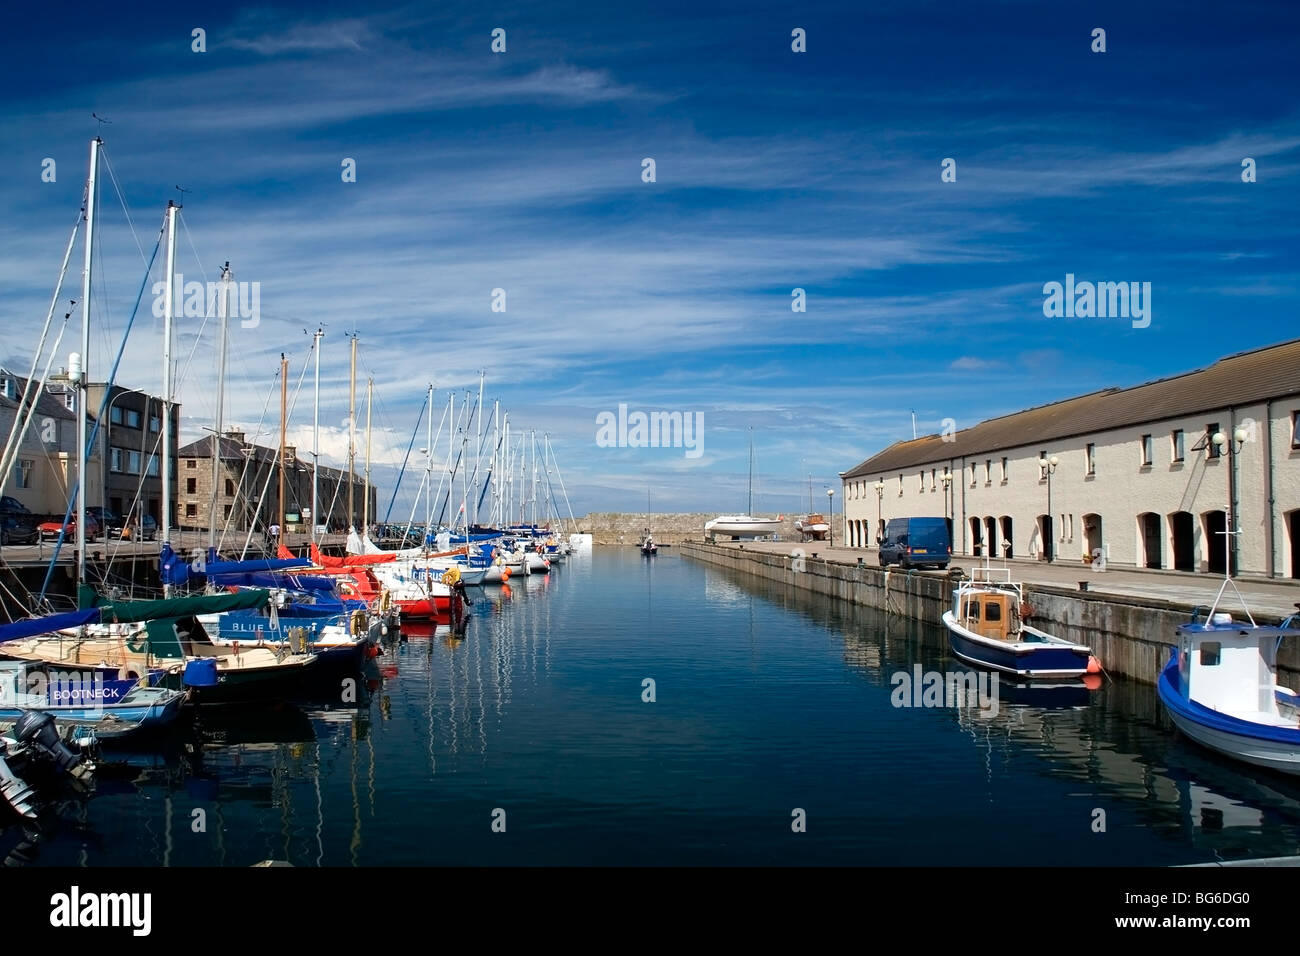 Harbour in Lossiemouth, Moray Shire, Scotland, UK - Stock Image